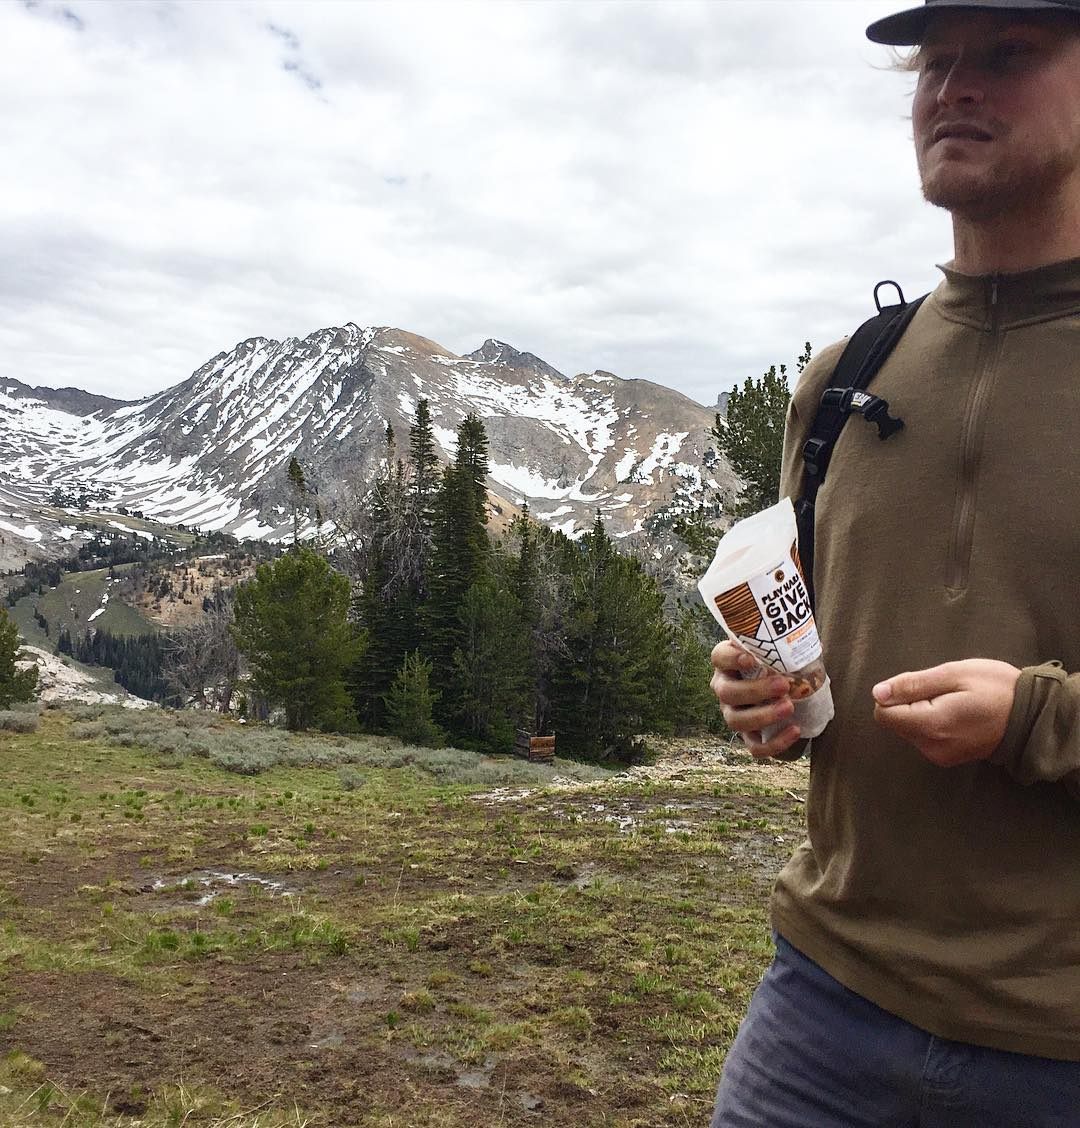 Sunday hikes in the Pioneer Mountains in Idaho. Anyone been? #PHGB #playhardgiveback #snacktime #snacksthatgiveback #playwithpurpose